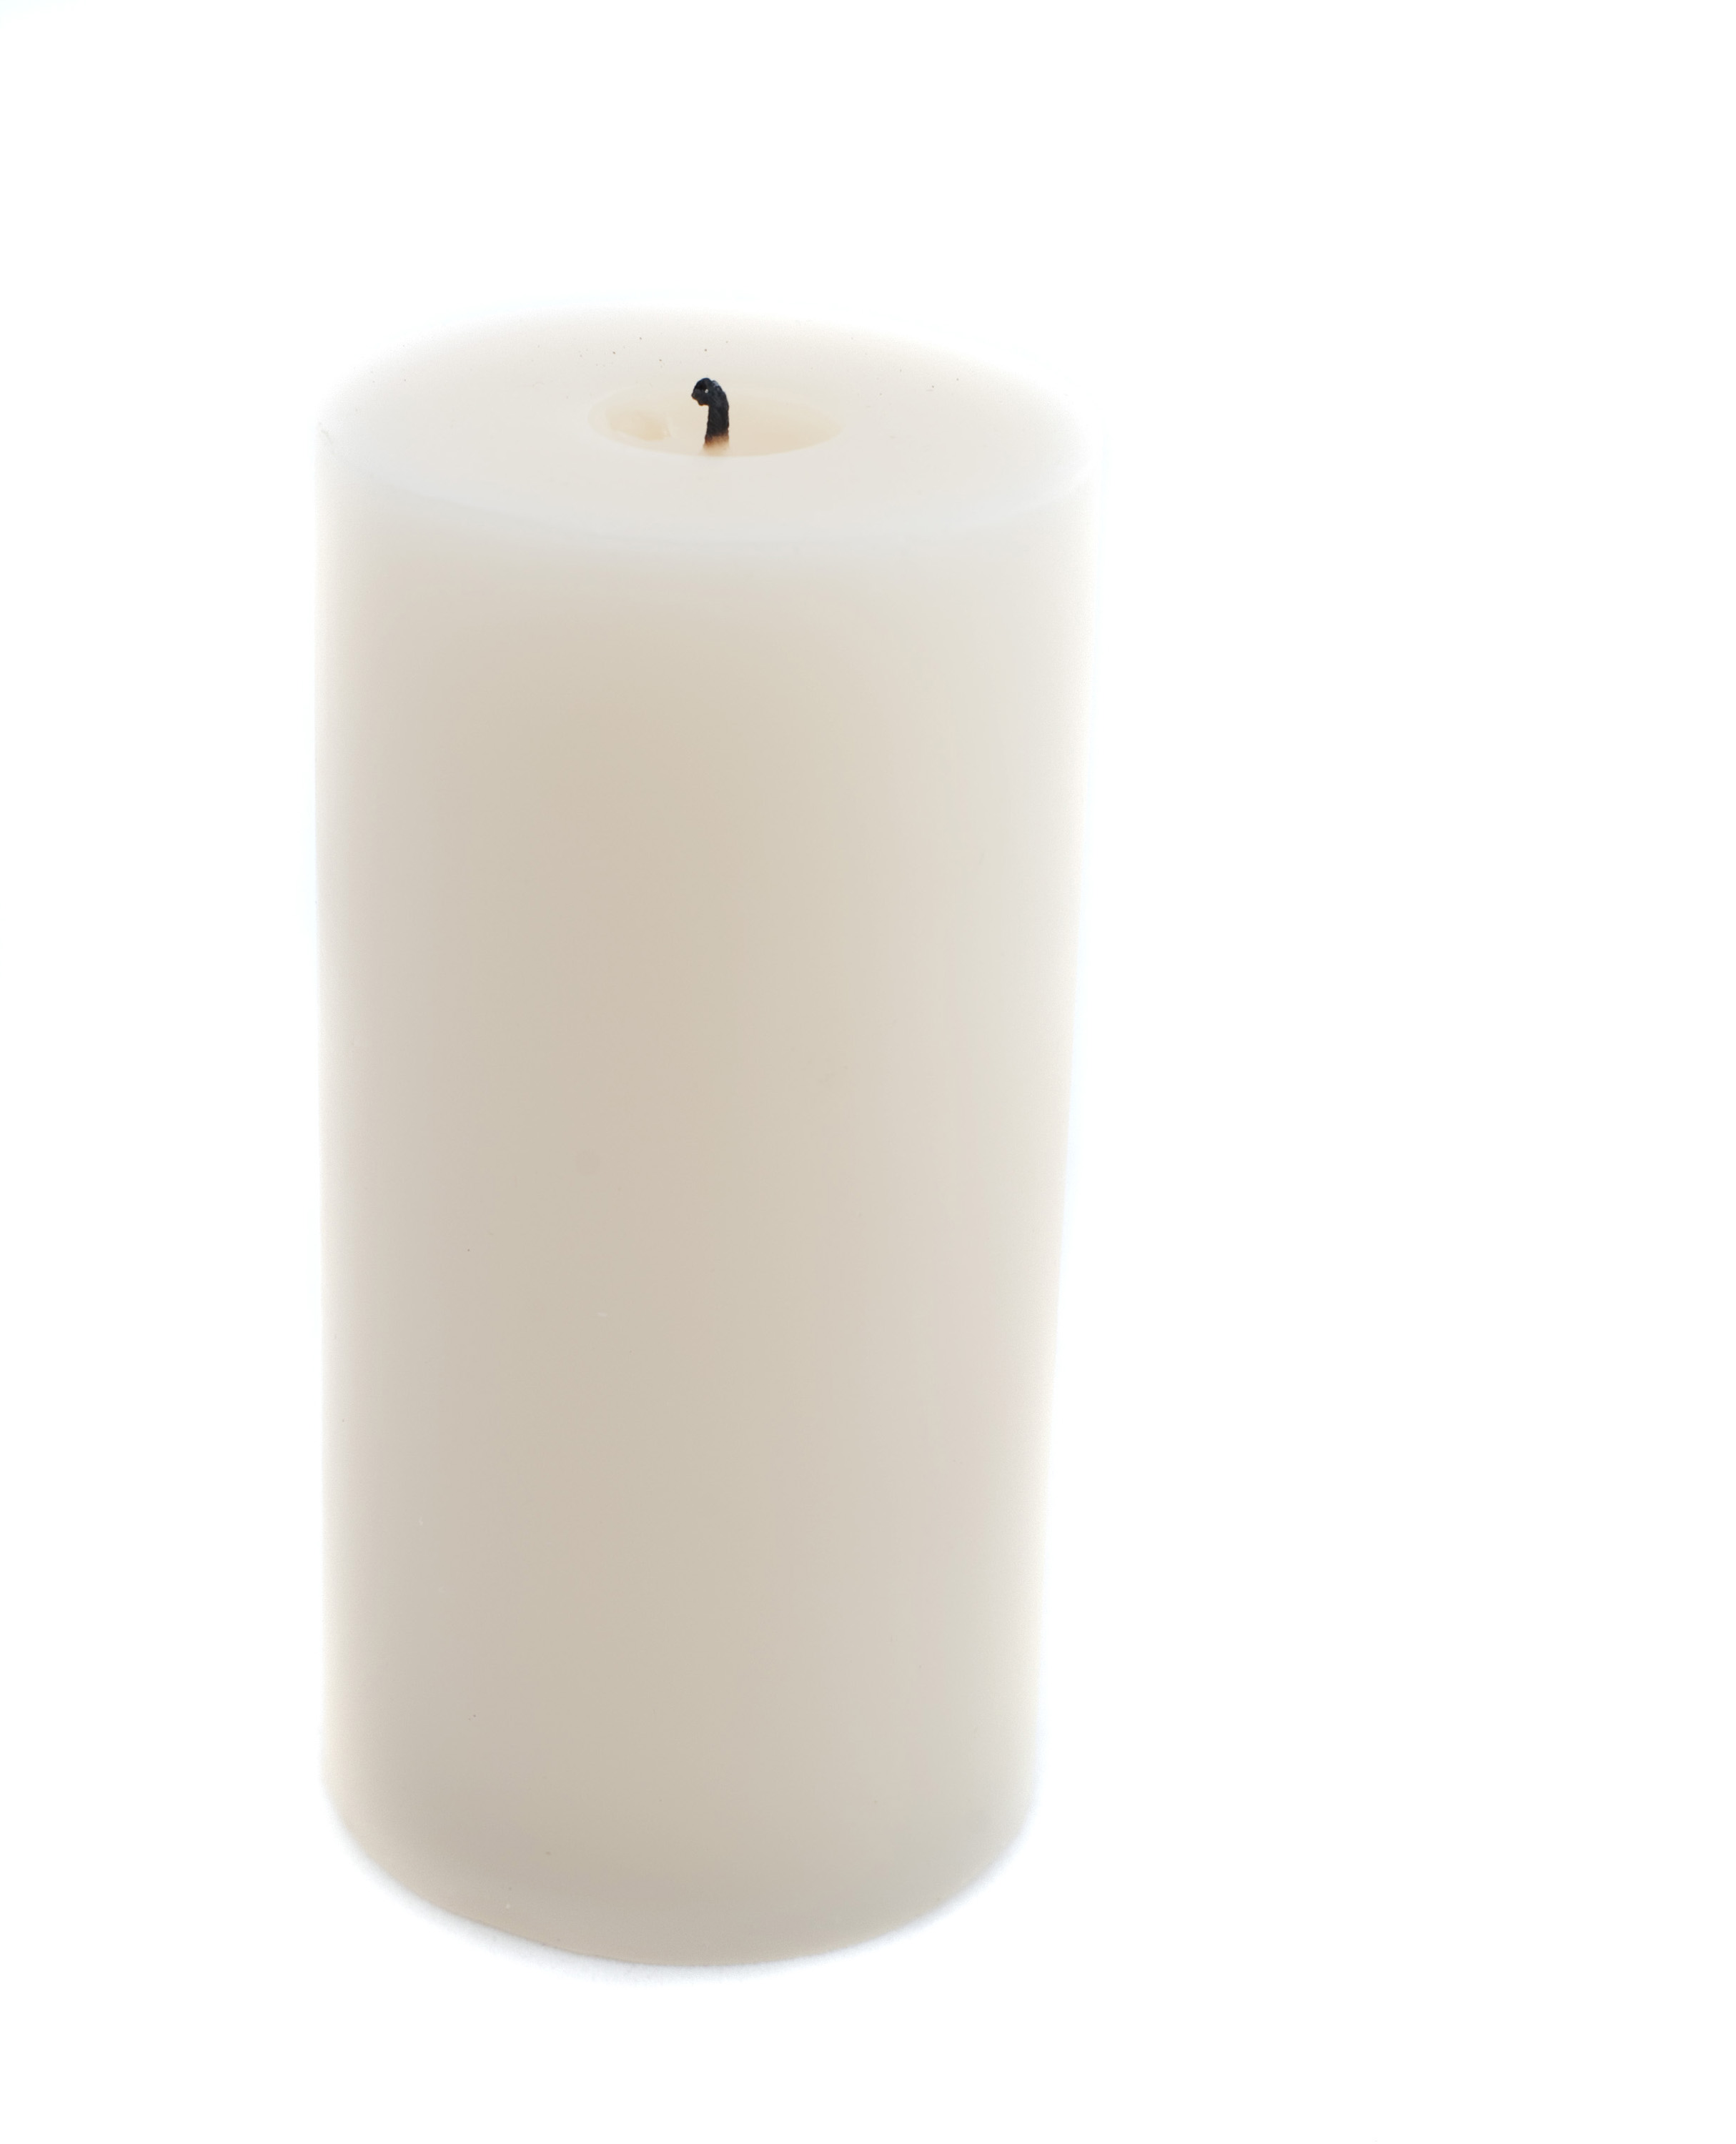 a large pillar candle unlit on a white backdrop